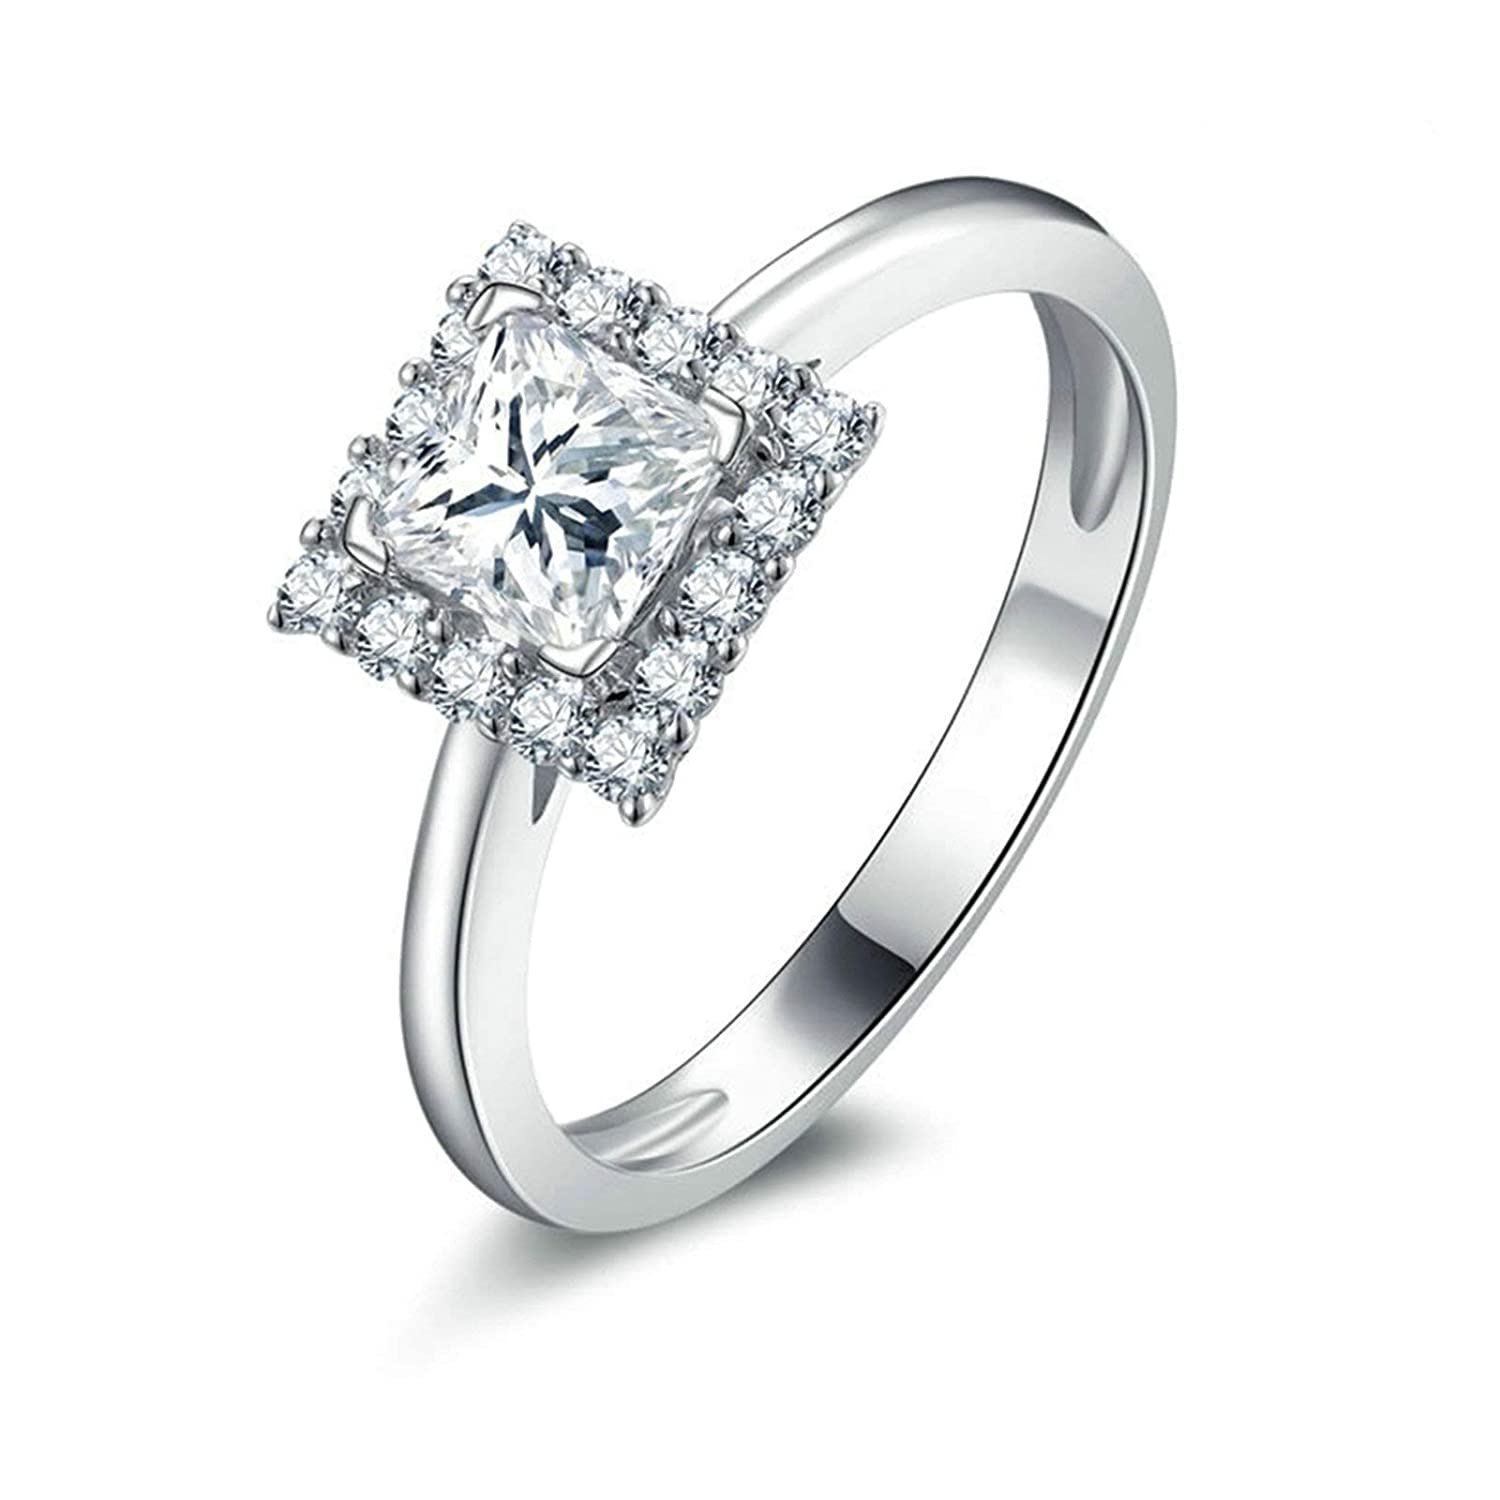 99a269584e56f Amazon.com: Aooaz Jewelry Wedding Ring Silver Material Crystal Ring ...